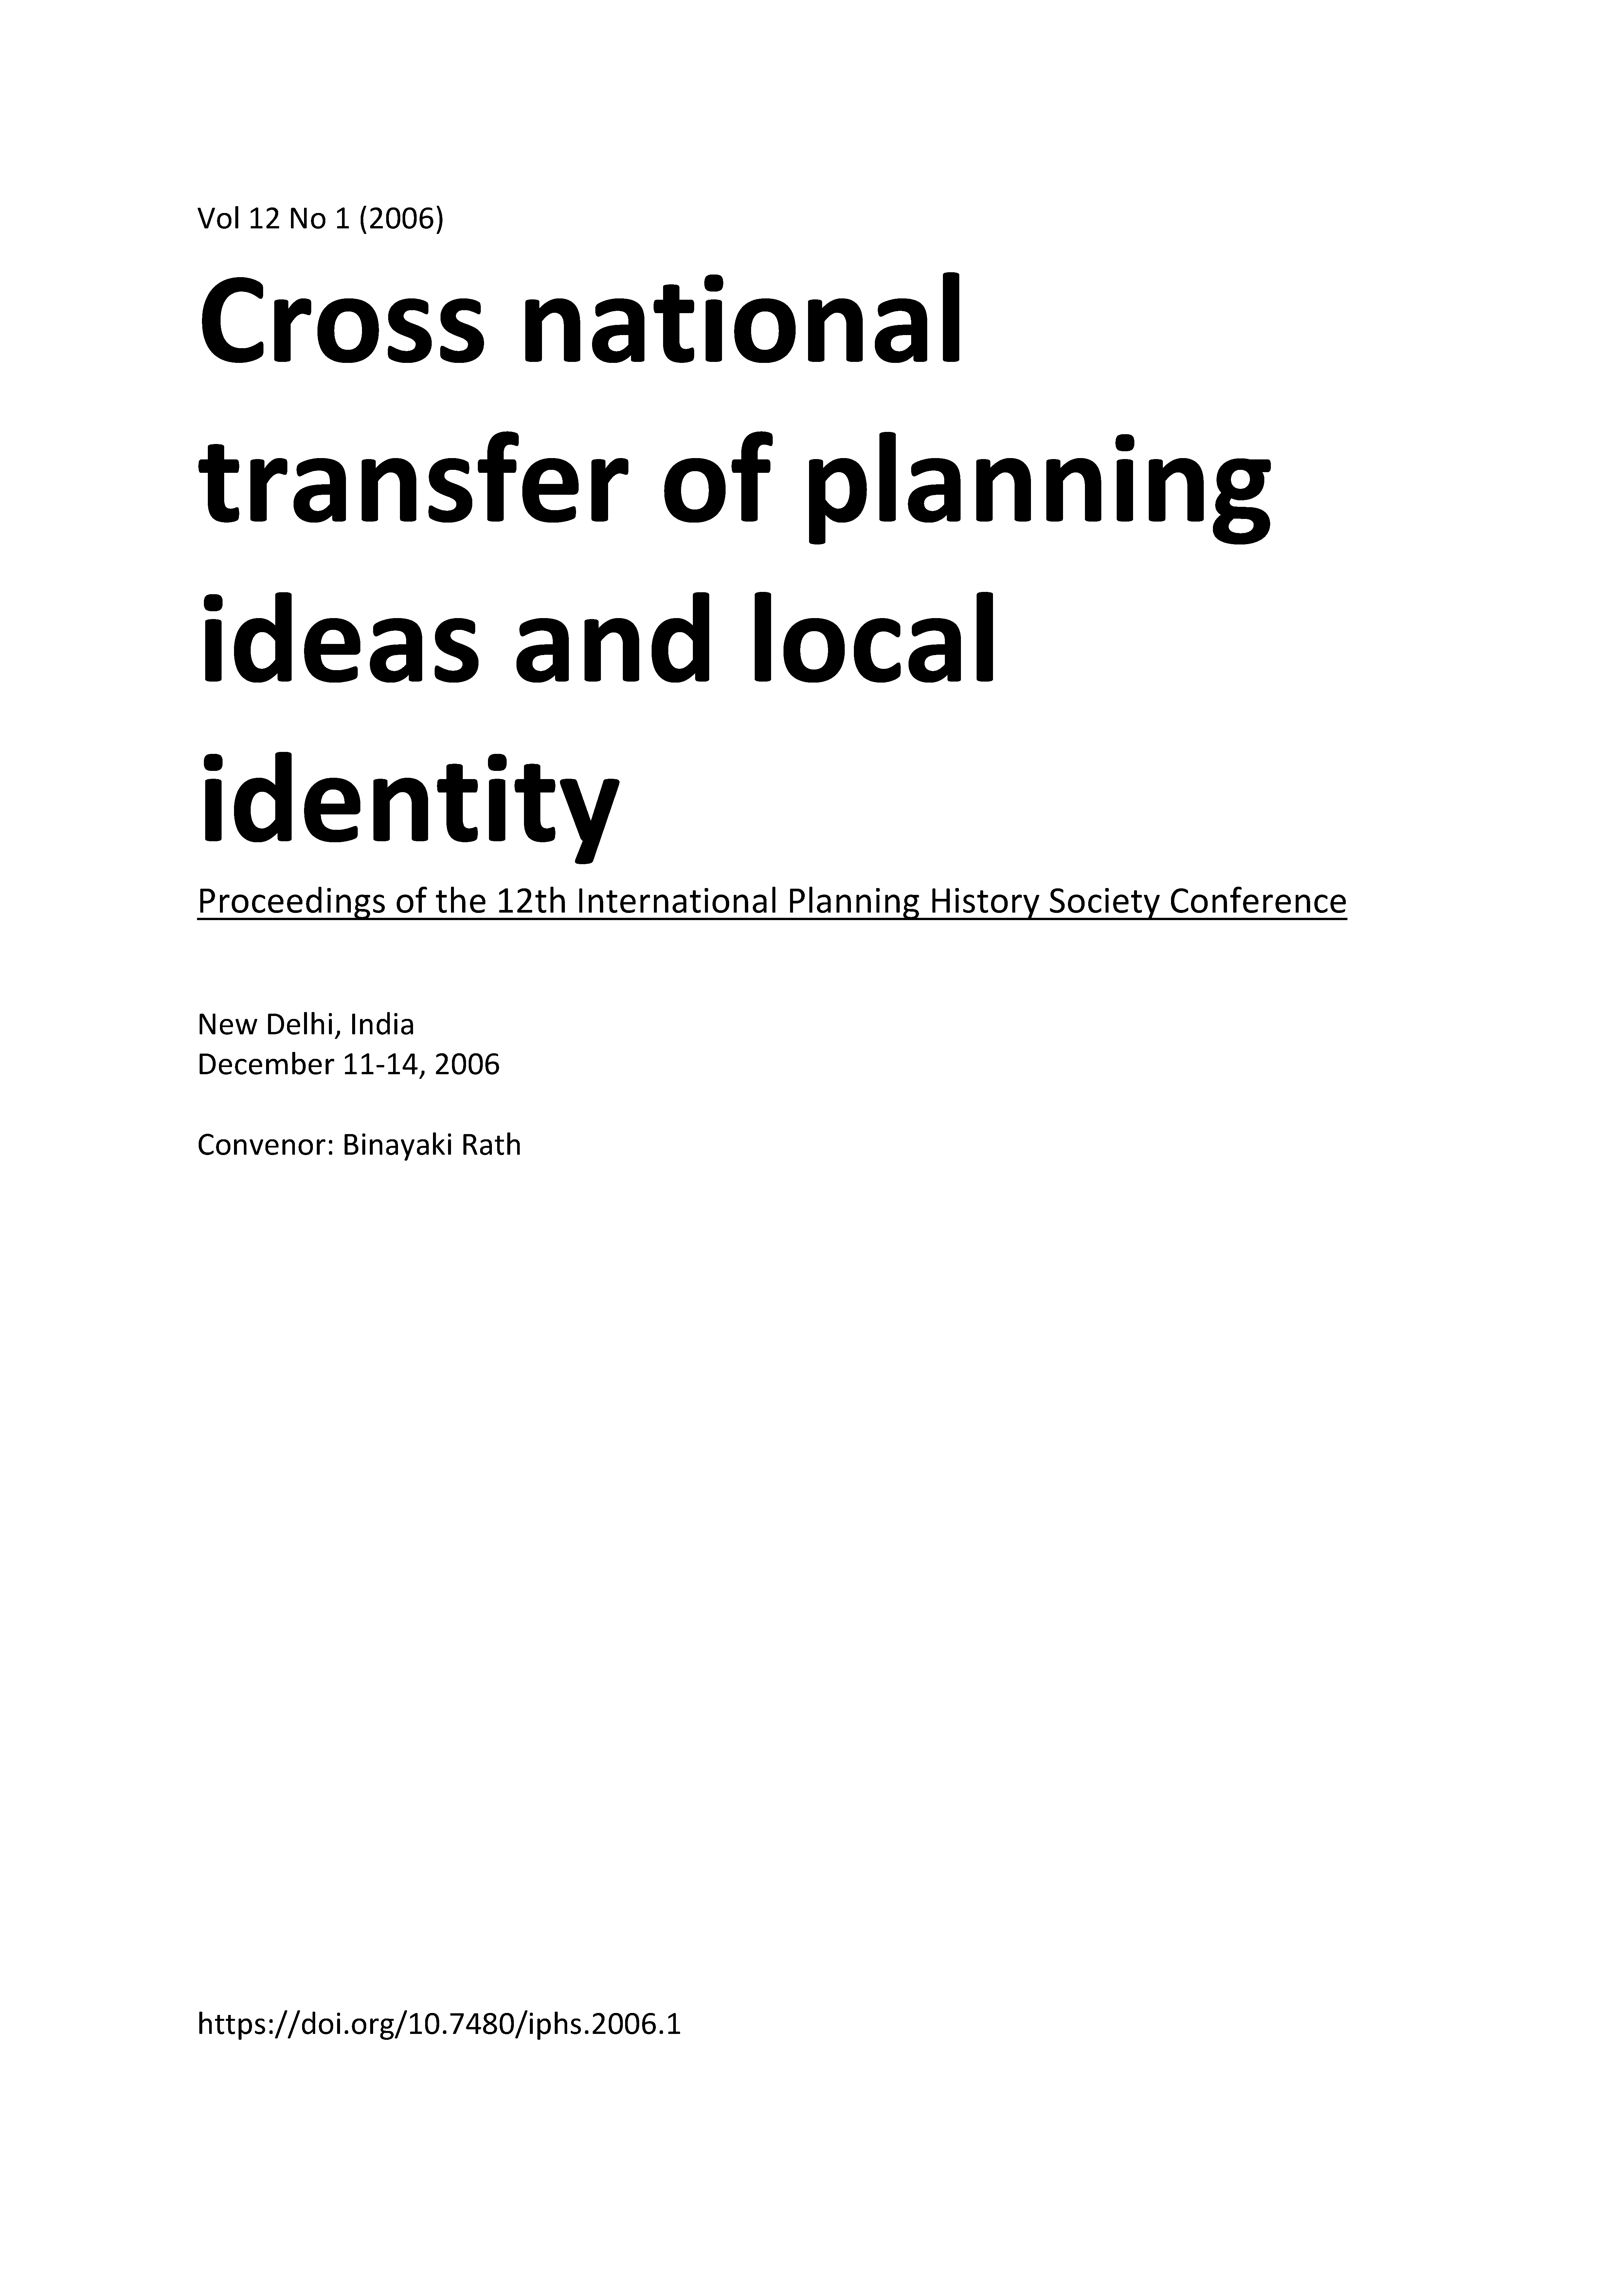 View Vol. 12 No. 1 (2006): Cross national transfer of planning ideas and local identity